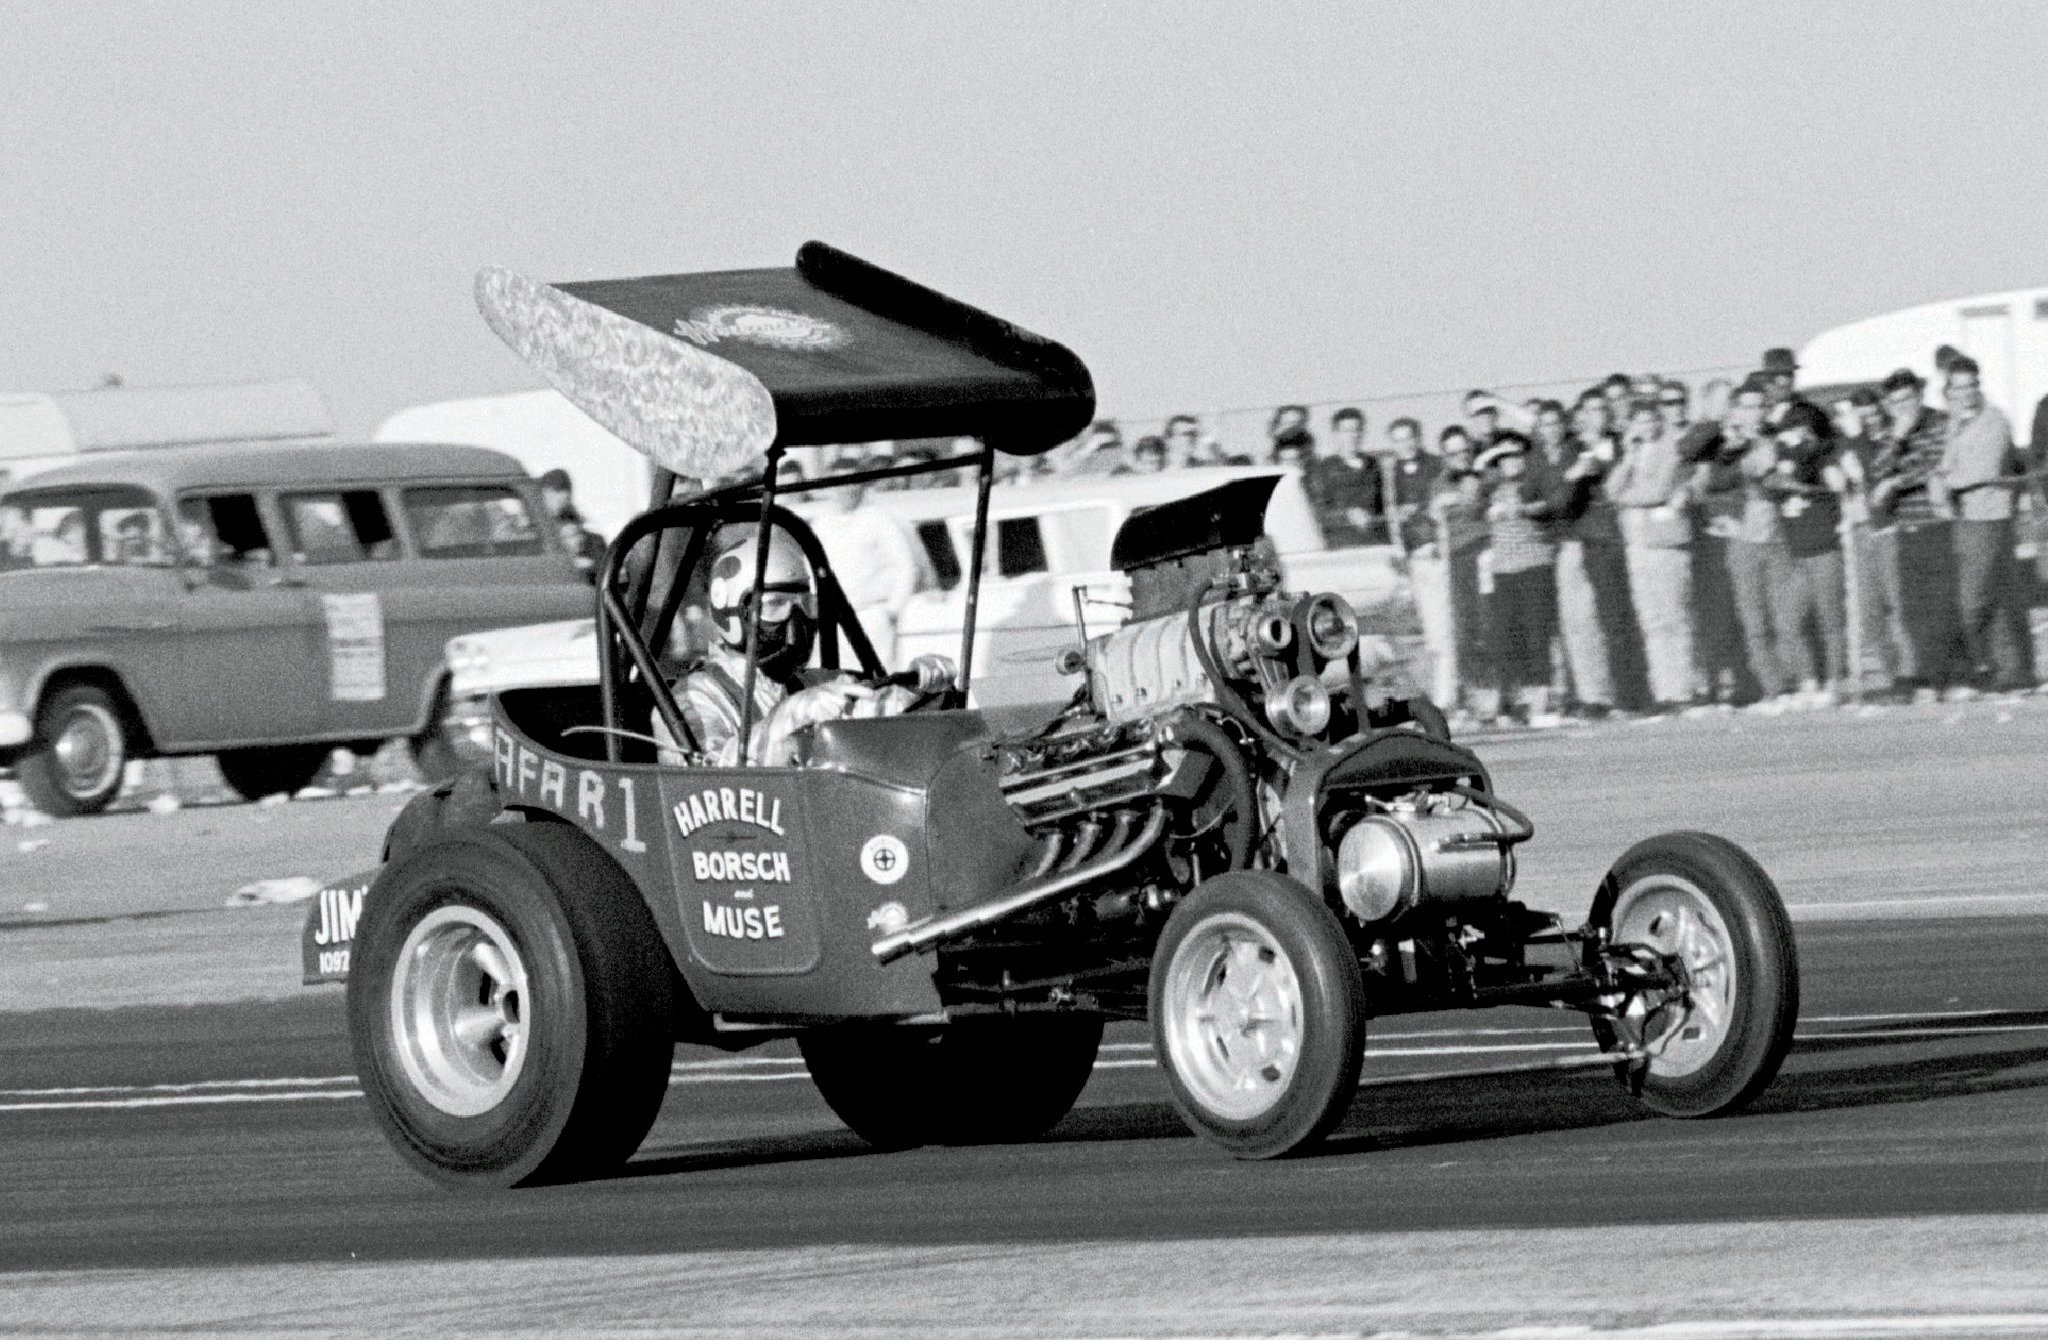 """During Bakersfield's sixth U.S. Fuel & Gas Championships, Harrell, Borsch & Muse experimented both with and without a new, spring-loaded airfoil, whose angle varied with the T's speed. """"Wild"""" Willie Borsch's early two-handed, no-smoke driving style earned the meet's A/Fuel Altered Roadster class trophy at 9.59/171.59."""